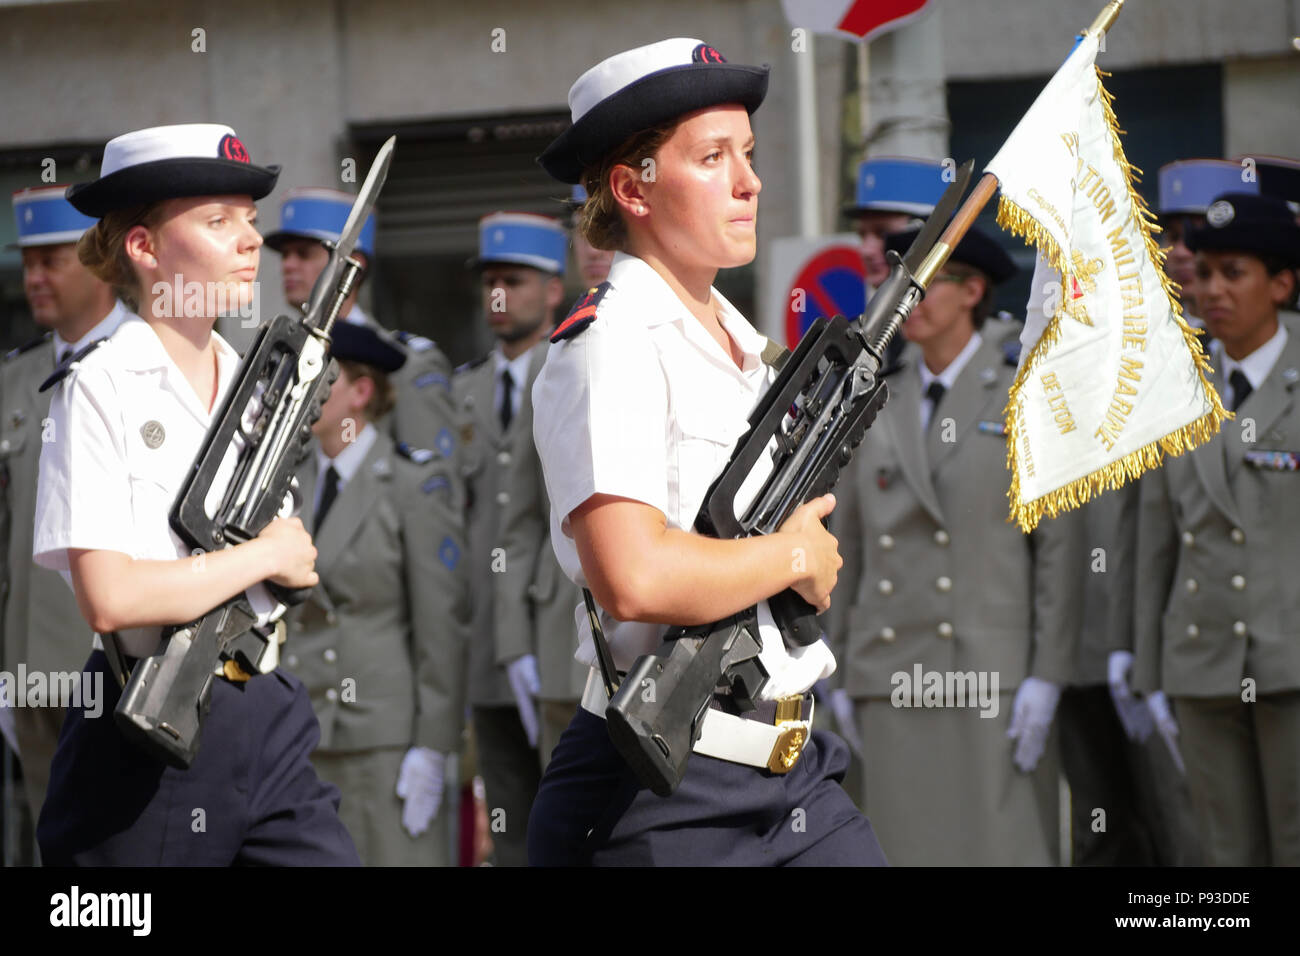 female soldiers celebration stock photos female soldiers celebration stock images alamy. Black Bedroom Furniture Sets. Home Design Ideas